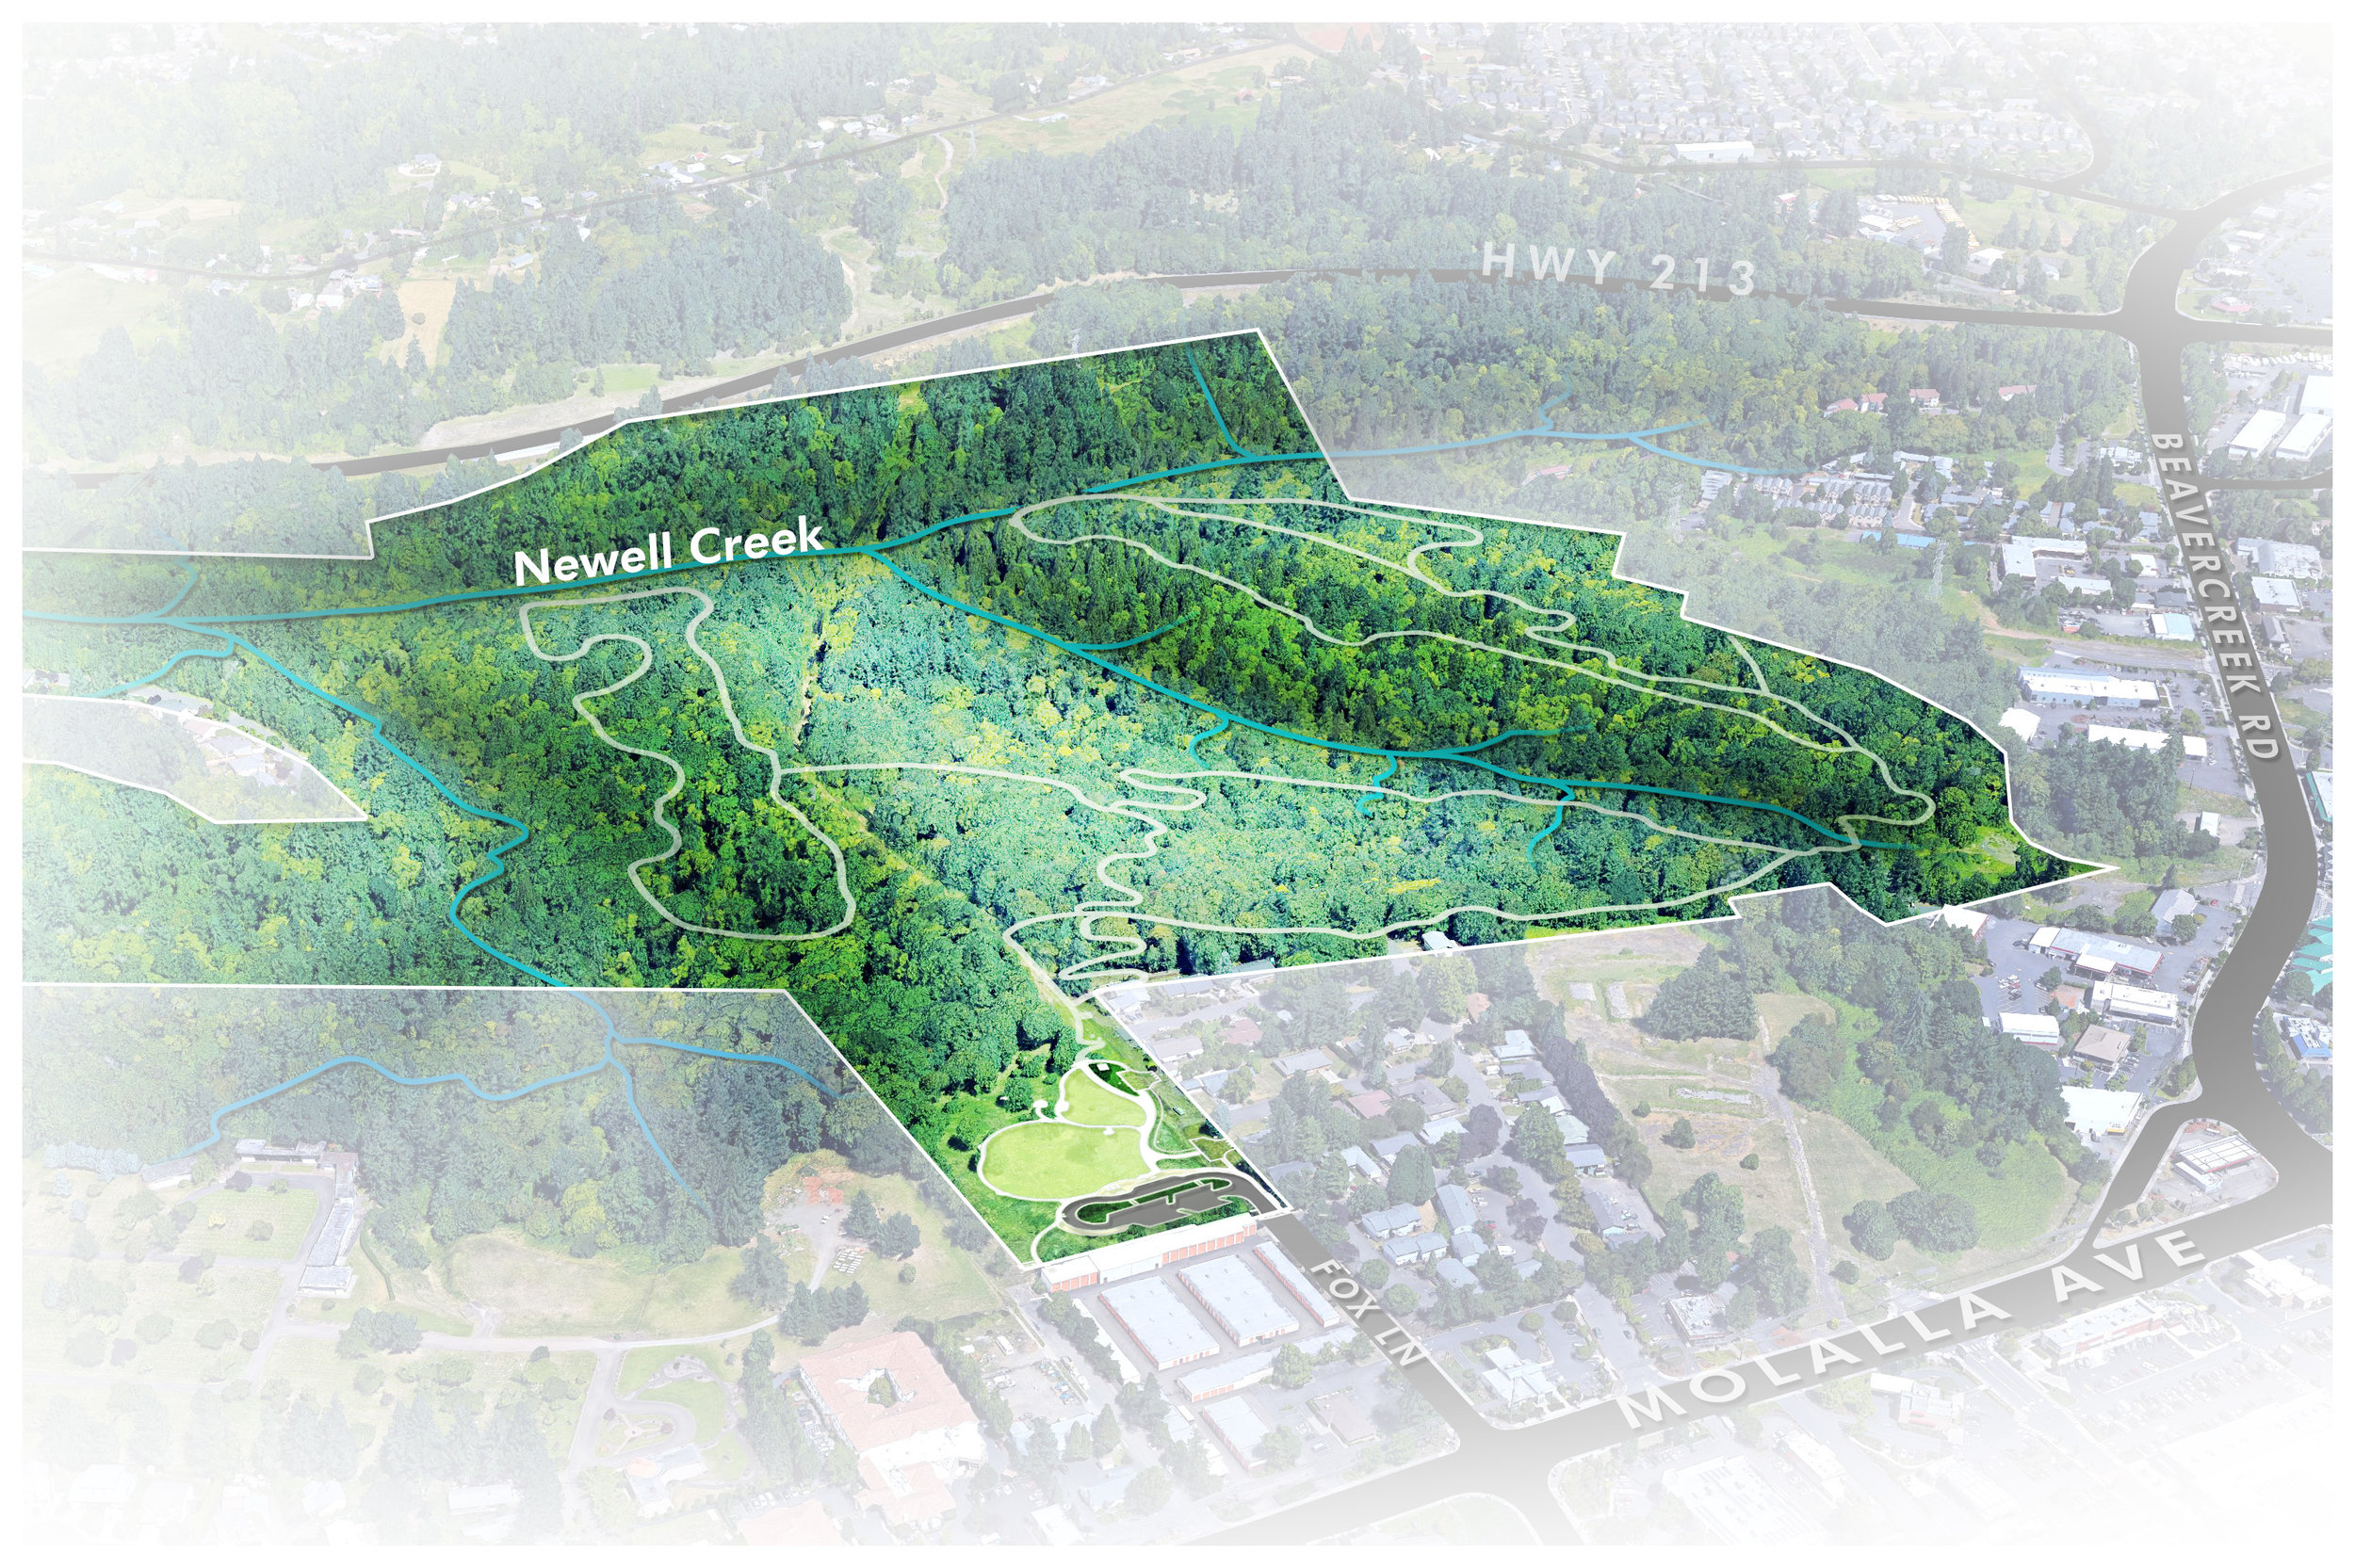 plan illustration for newell creek canyon from birdseye